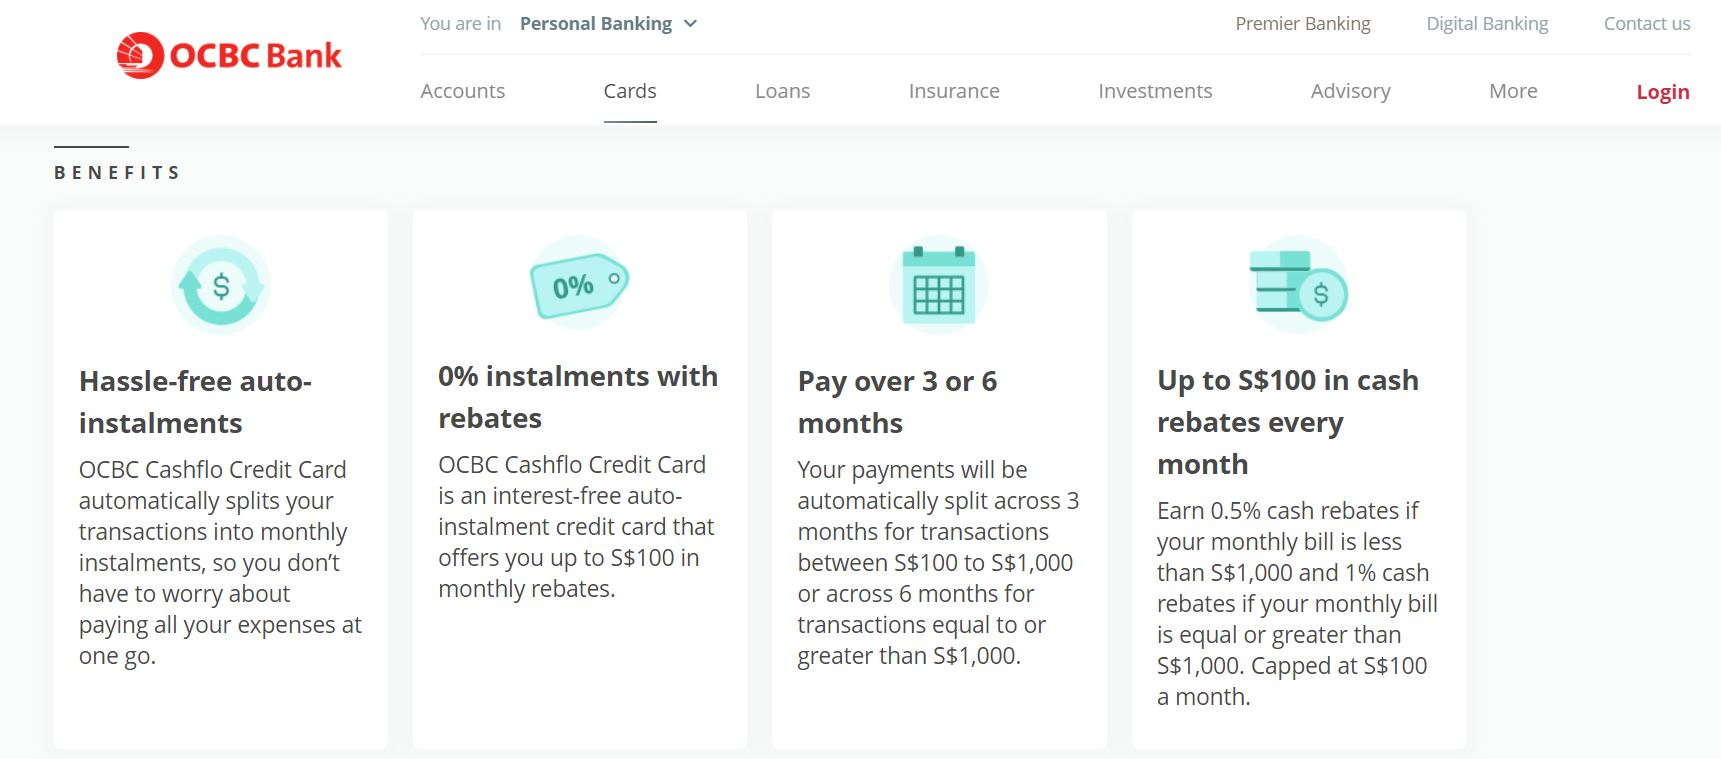 OCBC Cashflo Credit Card Pre-October 2020